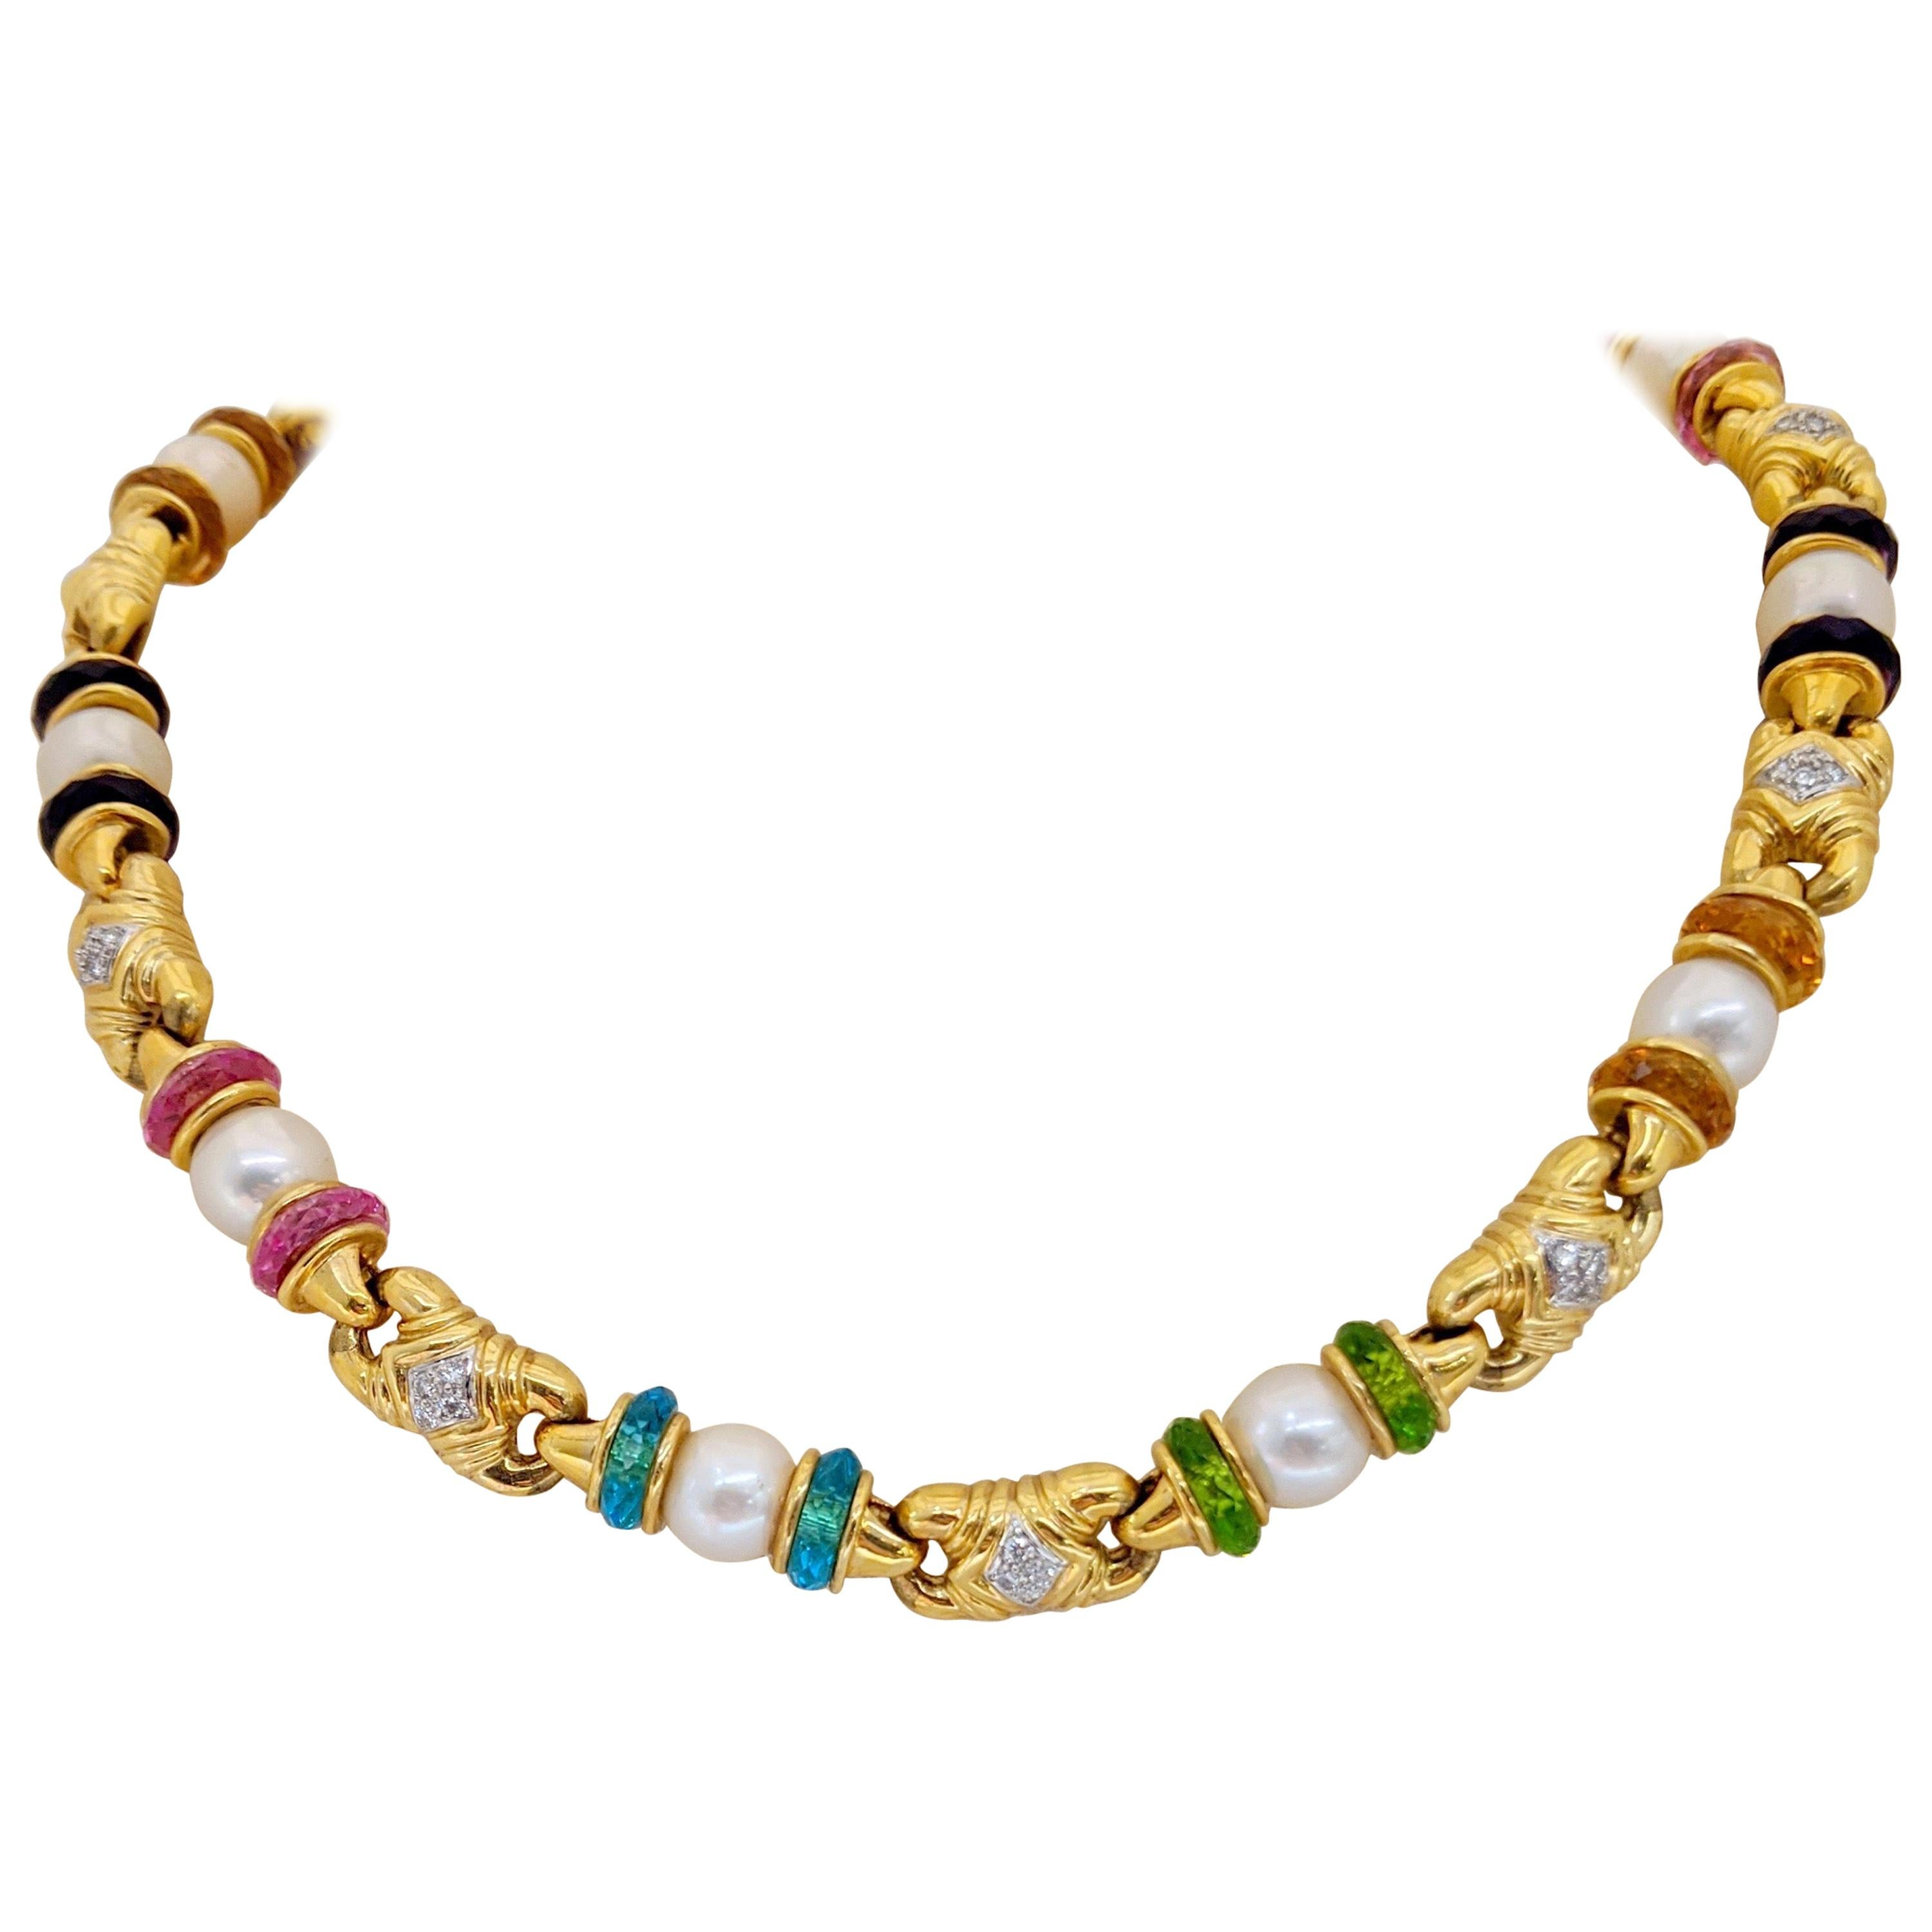 18 Karat Yellow Gold Necklace with Semi Precious Rondelles and Cultured Pearls